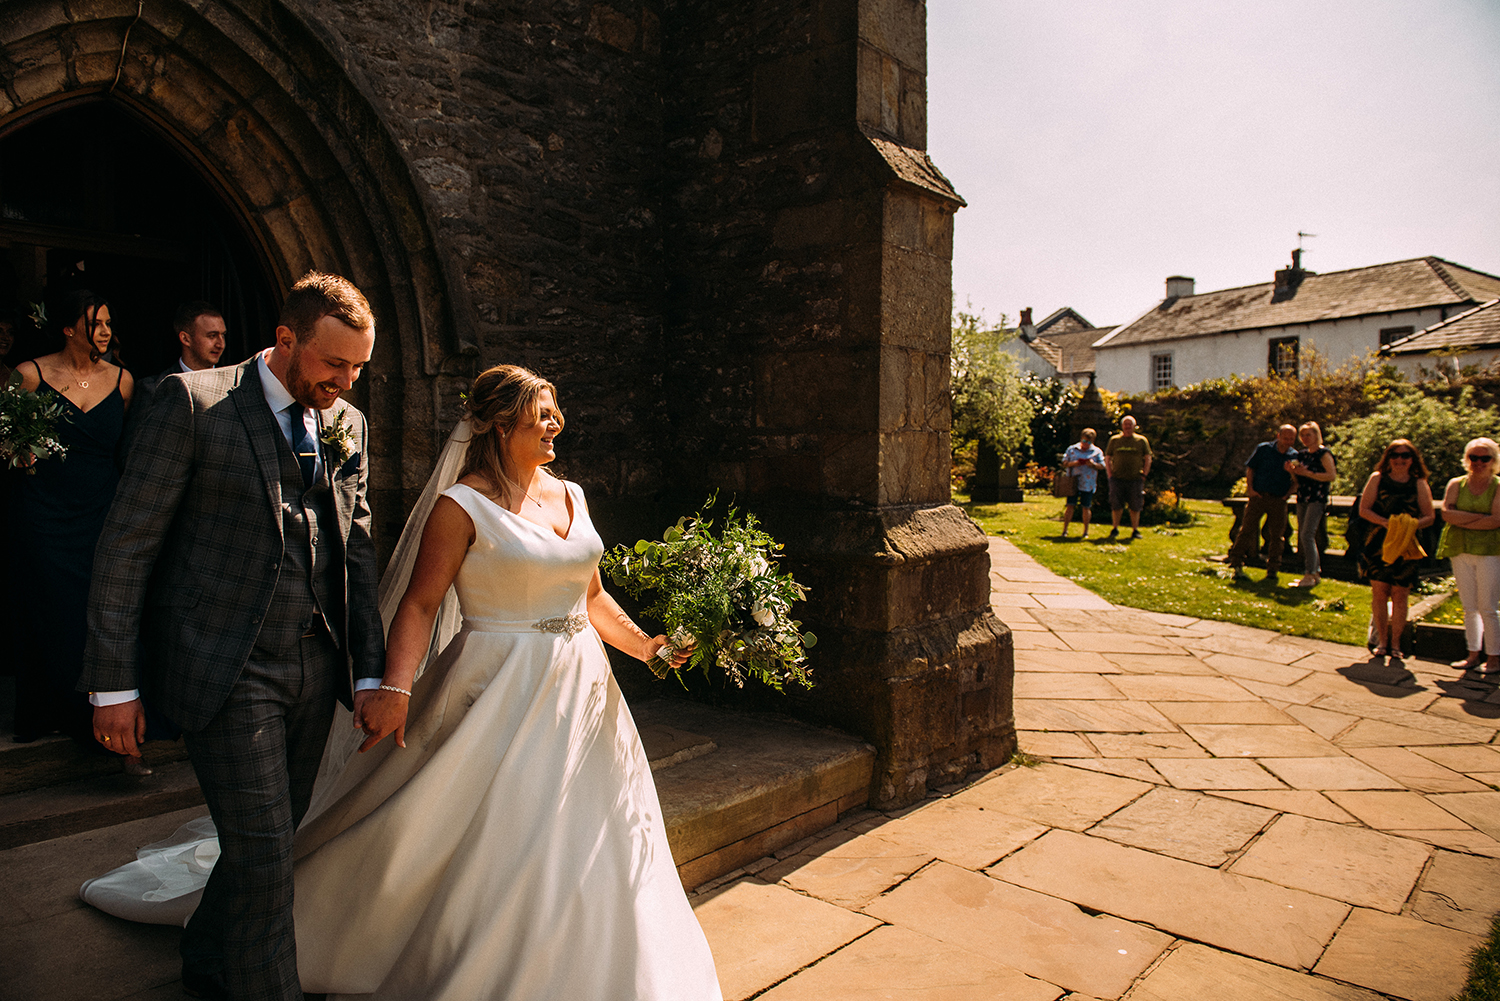 bride and groom leave church in the sunlight with the public looking on